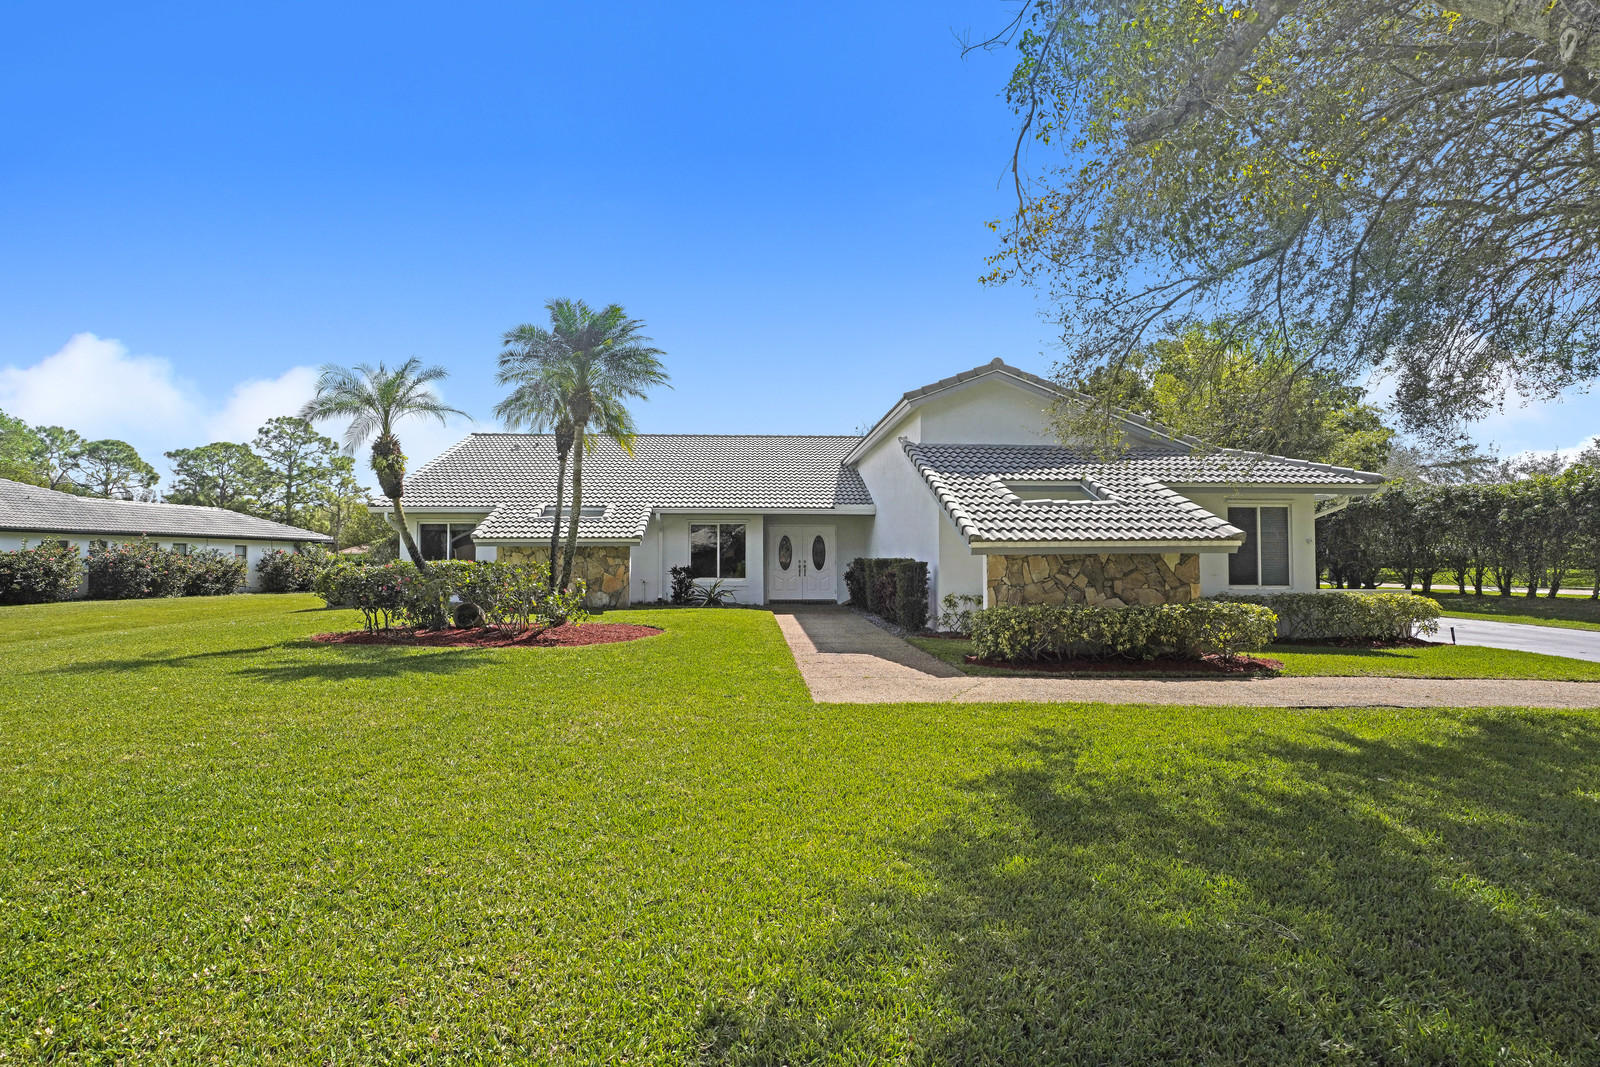 Tired of those zero lot line properties?  Here is your RARE opportunity to own your ACRE PLUS Estate Home in West Boca Raton!  Freshly painted one story house with new water heater, slide in hurricane shutters, extra long driveway, and A Rated Schools!  Priced to sell!  Come fall in love with this beautiful ranch style home!